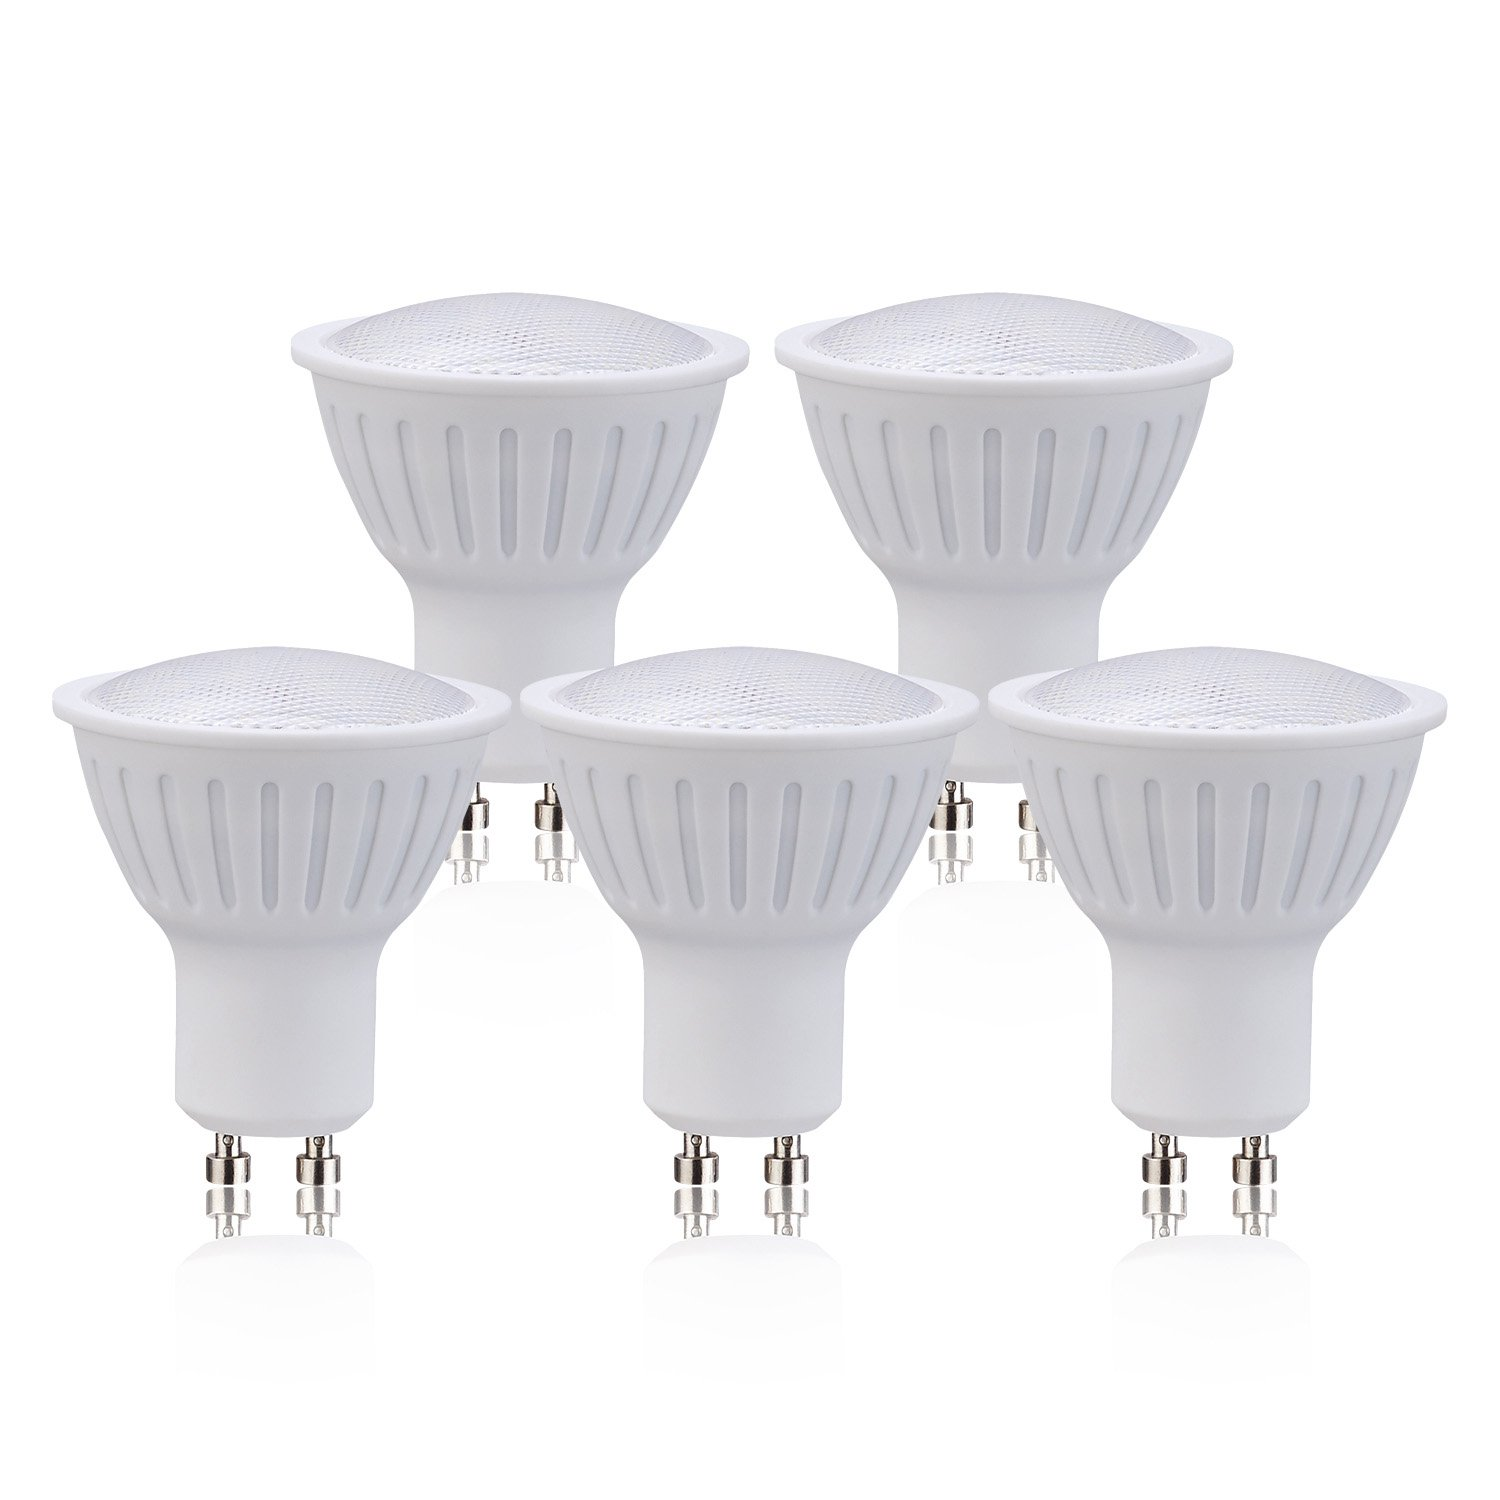 (5 Pack)GU10 Dimmable LED Flood Light Bulb Soft White(3000K) Light Bulbs 3W (30W Equivalent) for Home, 270LM 120V 120 Degree Beam Angle LED Bulb.